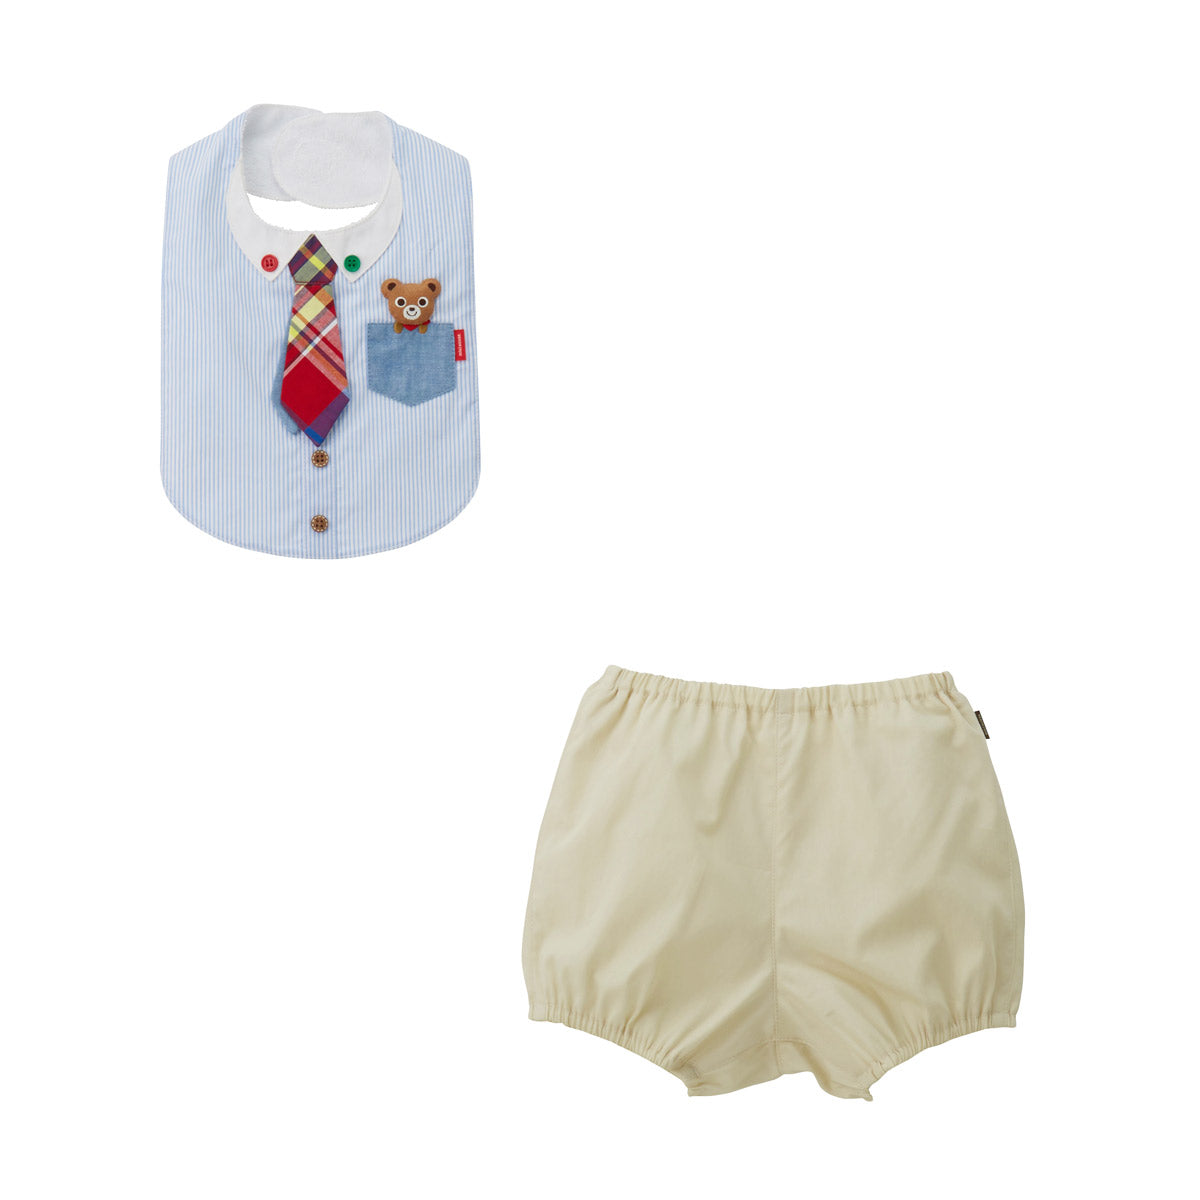 Baby Gift Set for Boys